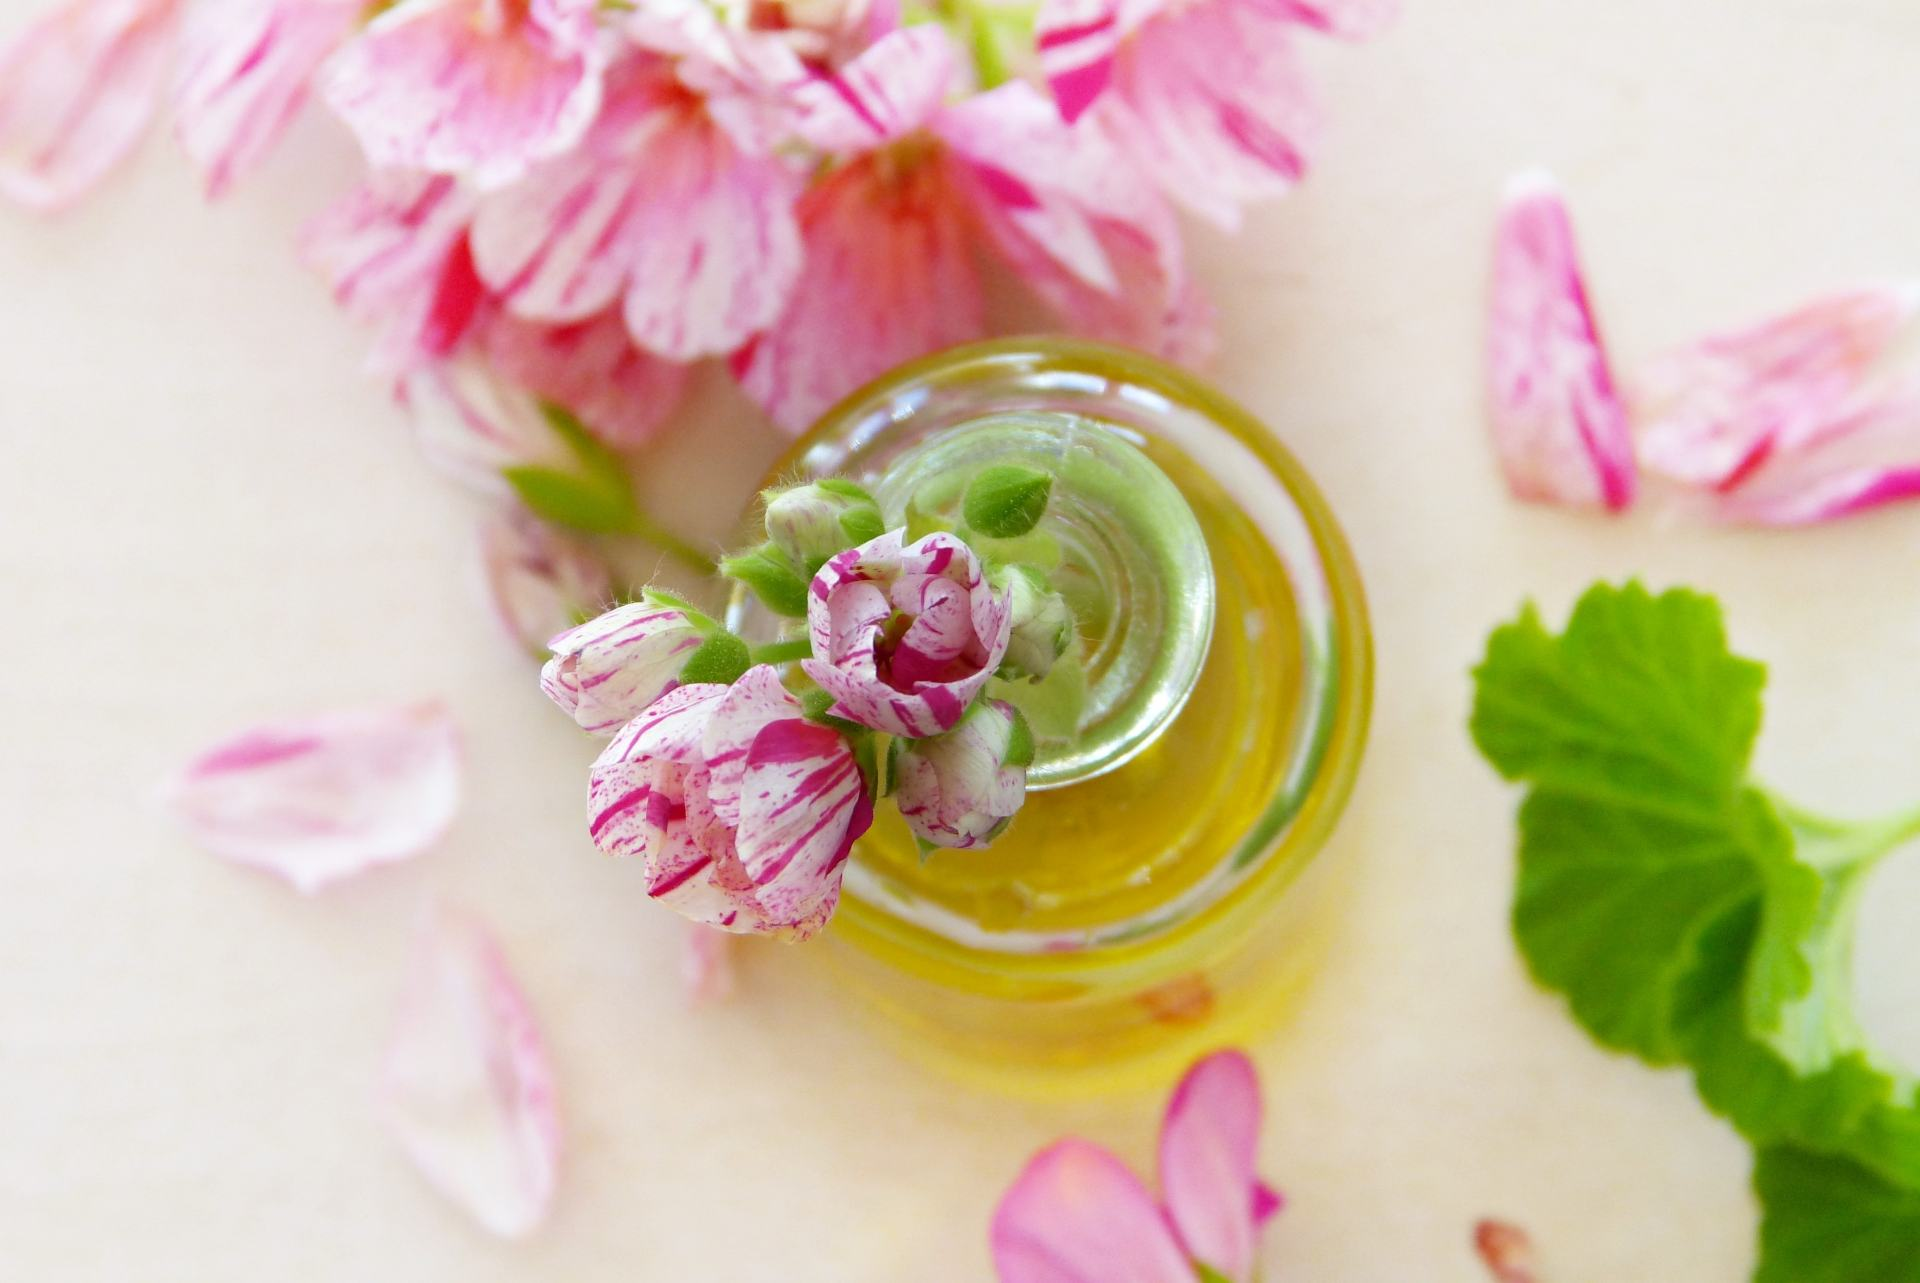 7-unexpected-uses-of-olive-oil-www.stylinglifetoday.com